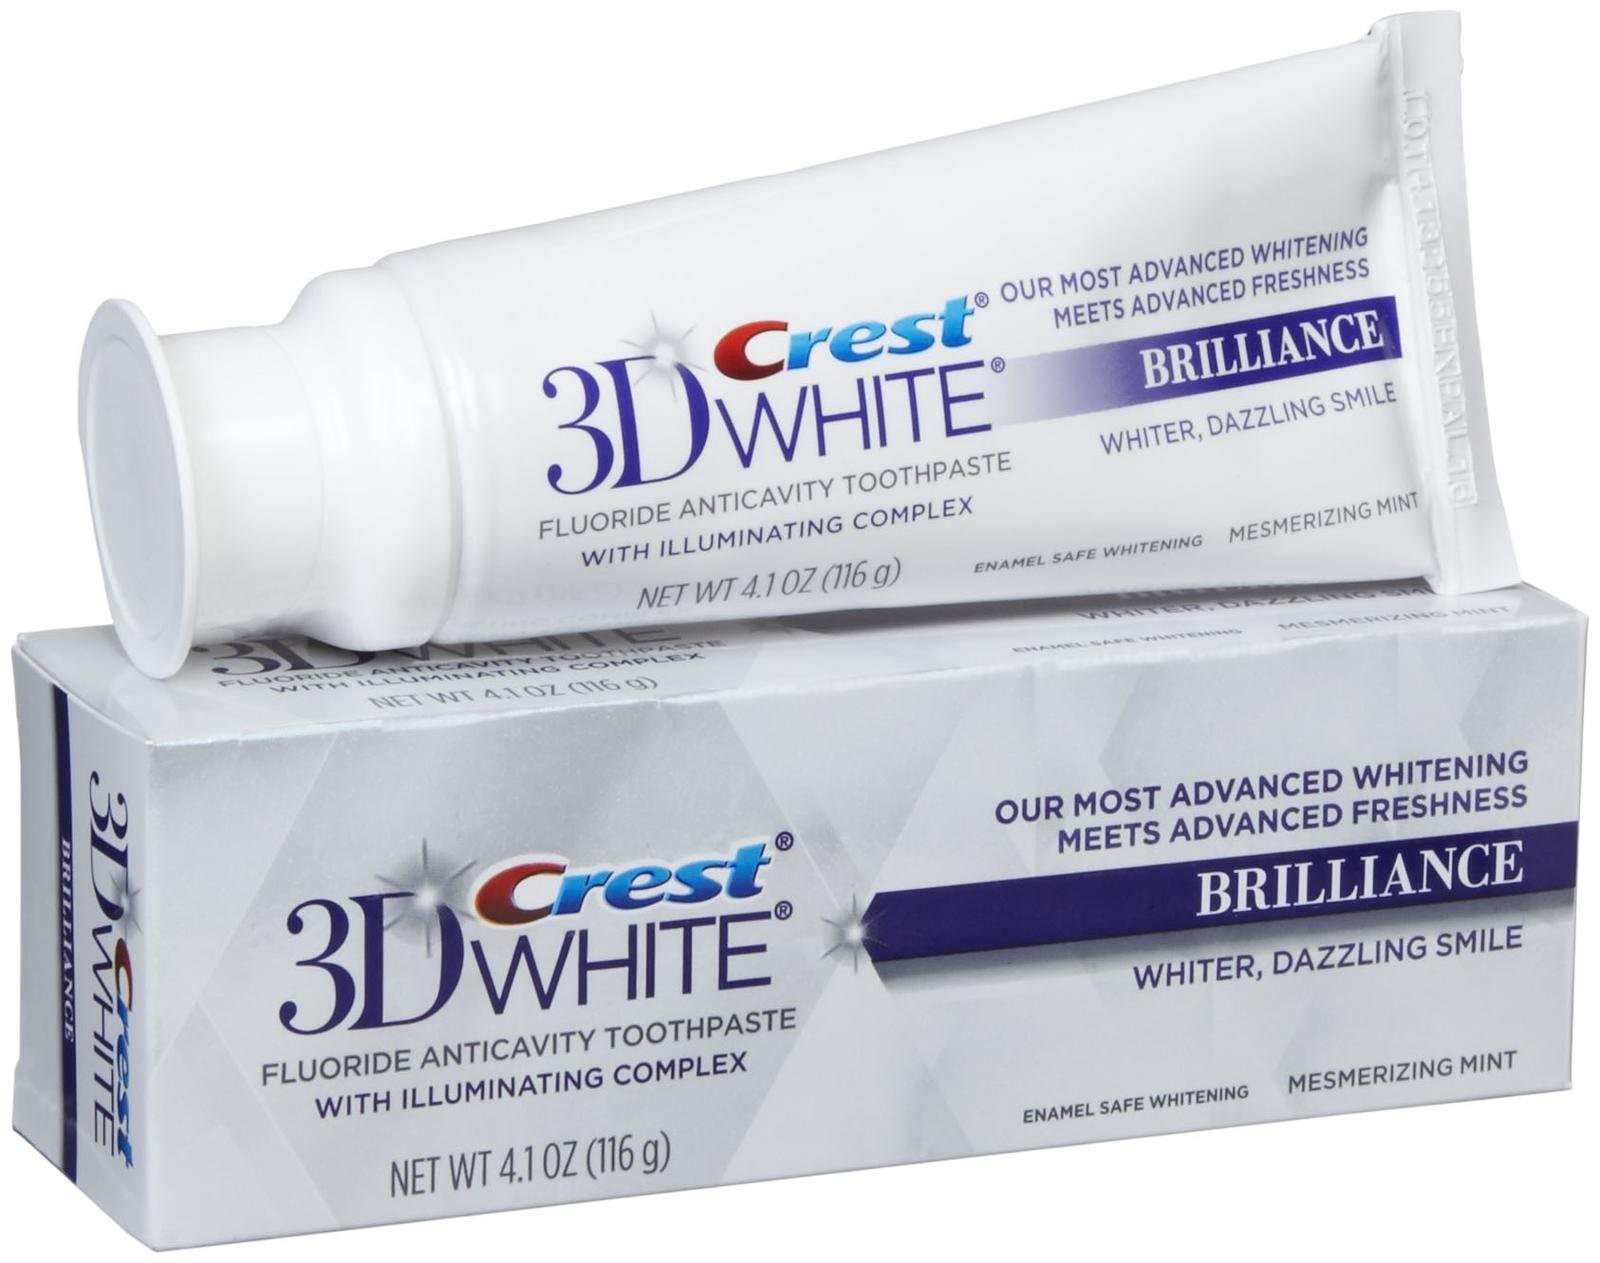 Crest 3D White Brilliance White Toothpaste 4.1oz (116g) - Teeth Whitening Shop